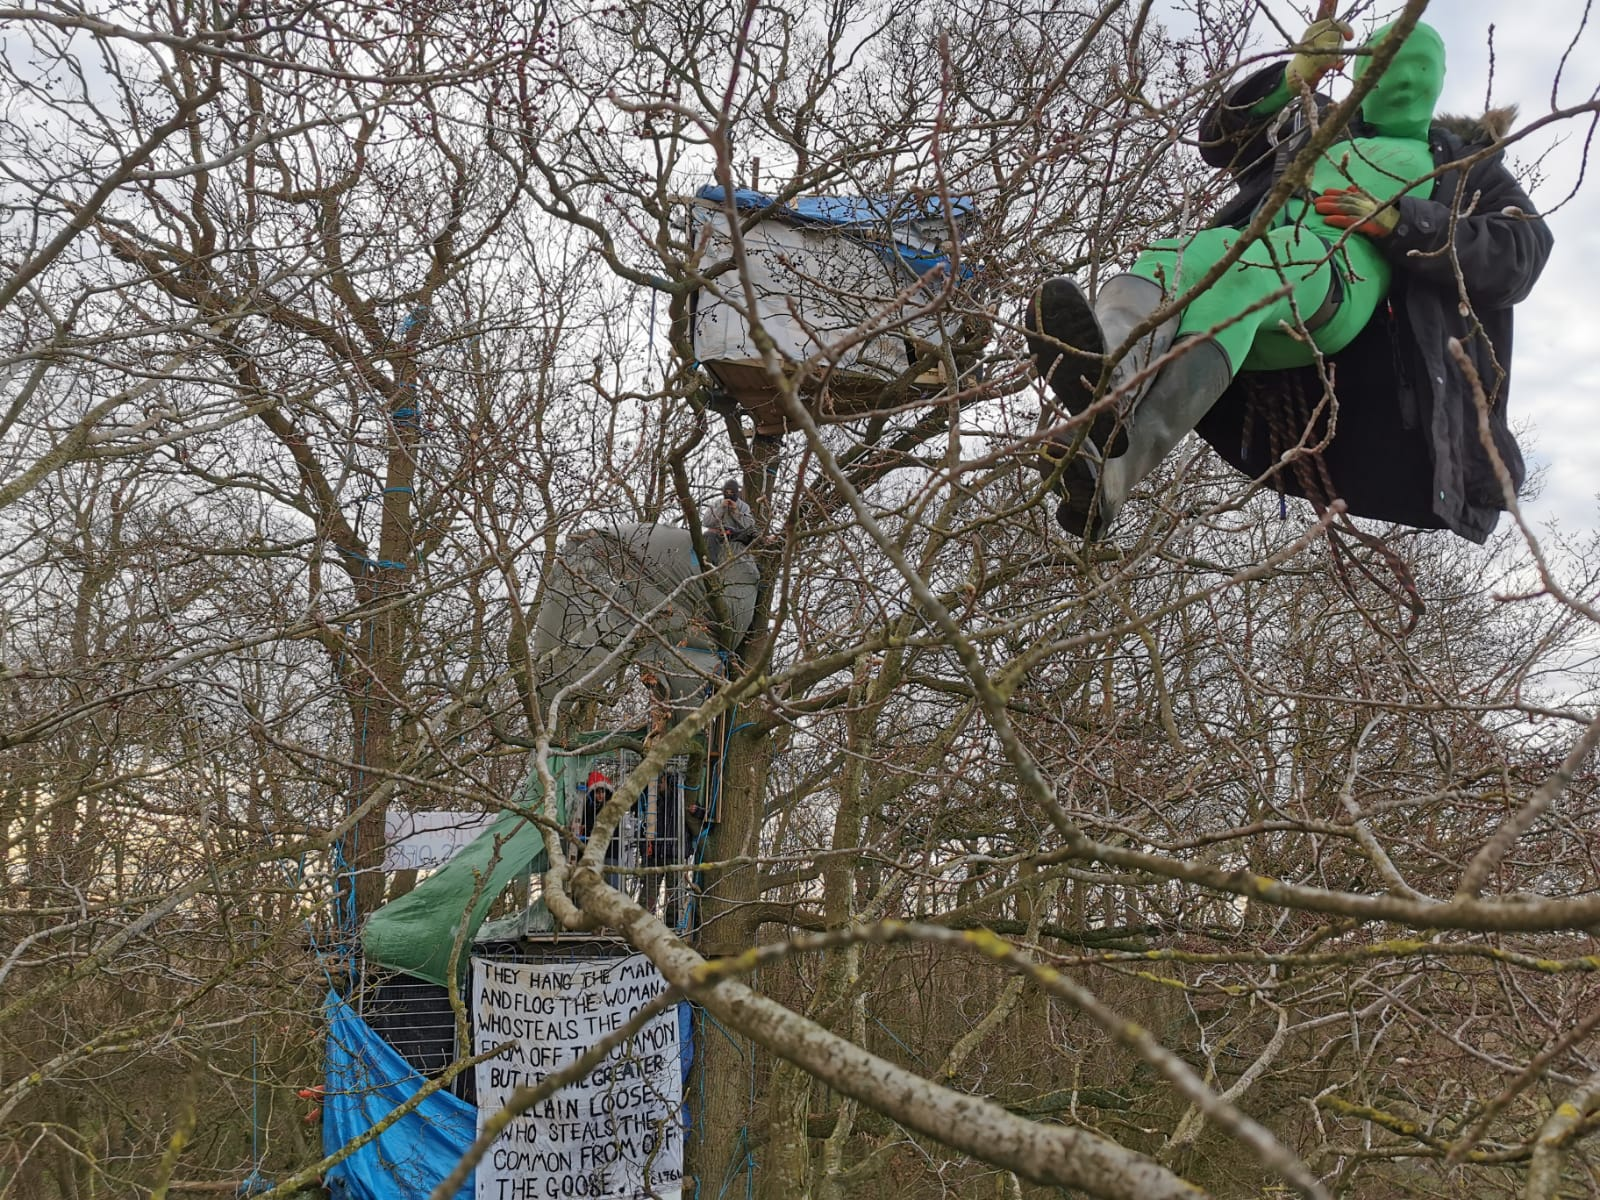 Tree protectors demand HS2 is scrapped and money diverted to NHS, as latest eviction begins